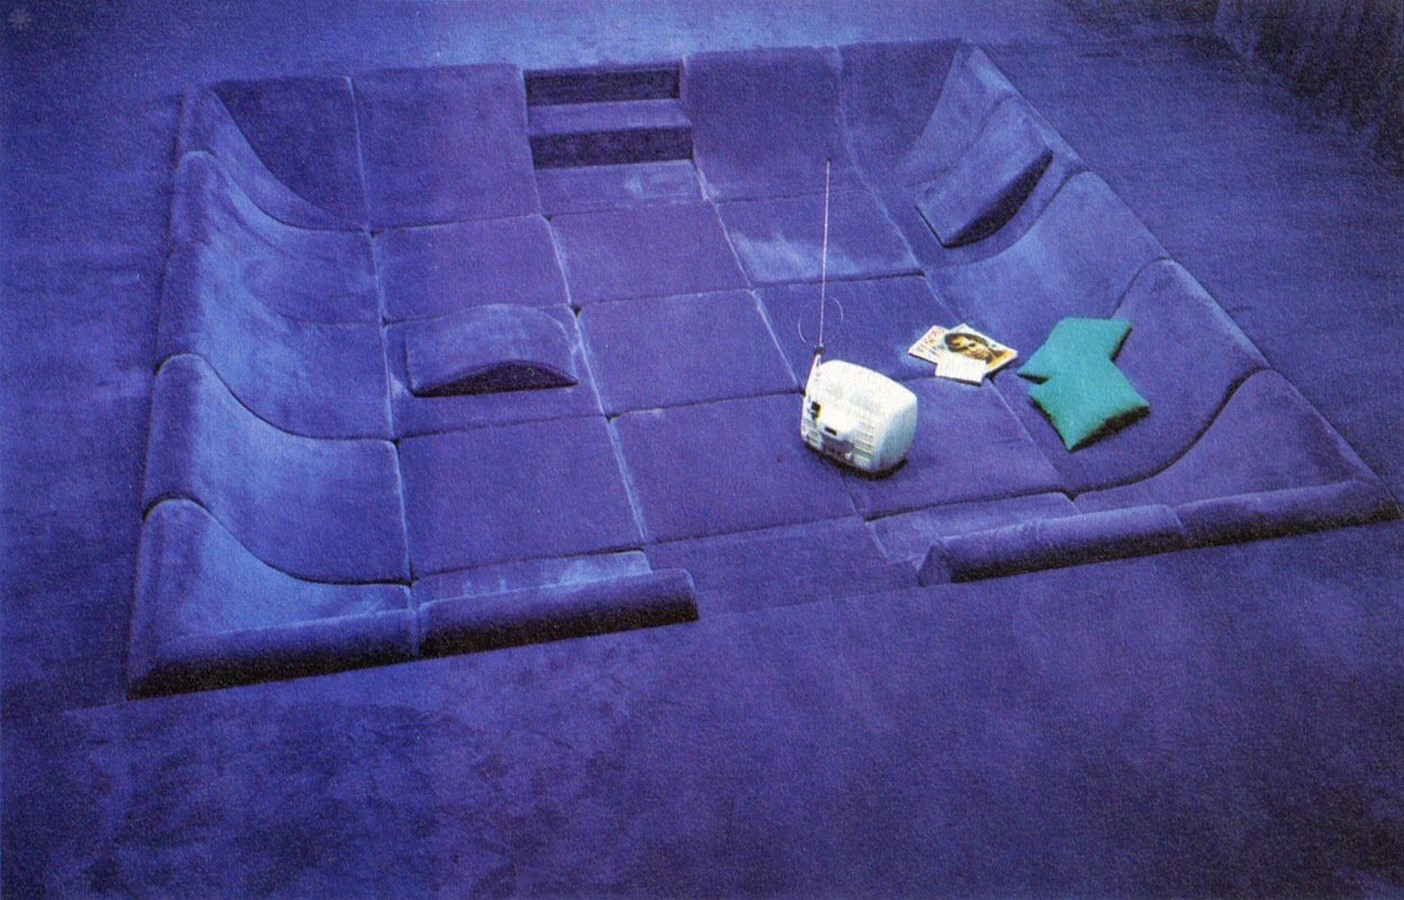 30 Examples of a conversation pit - Sheet13